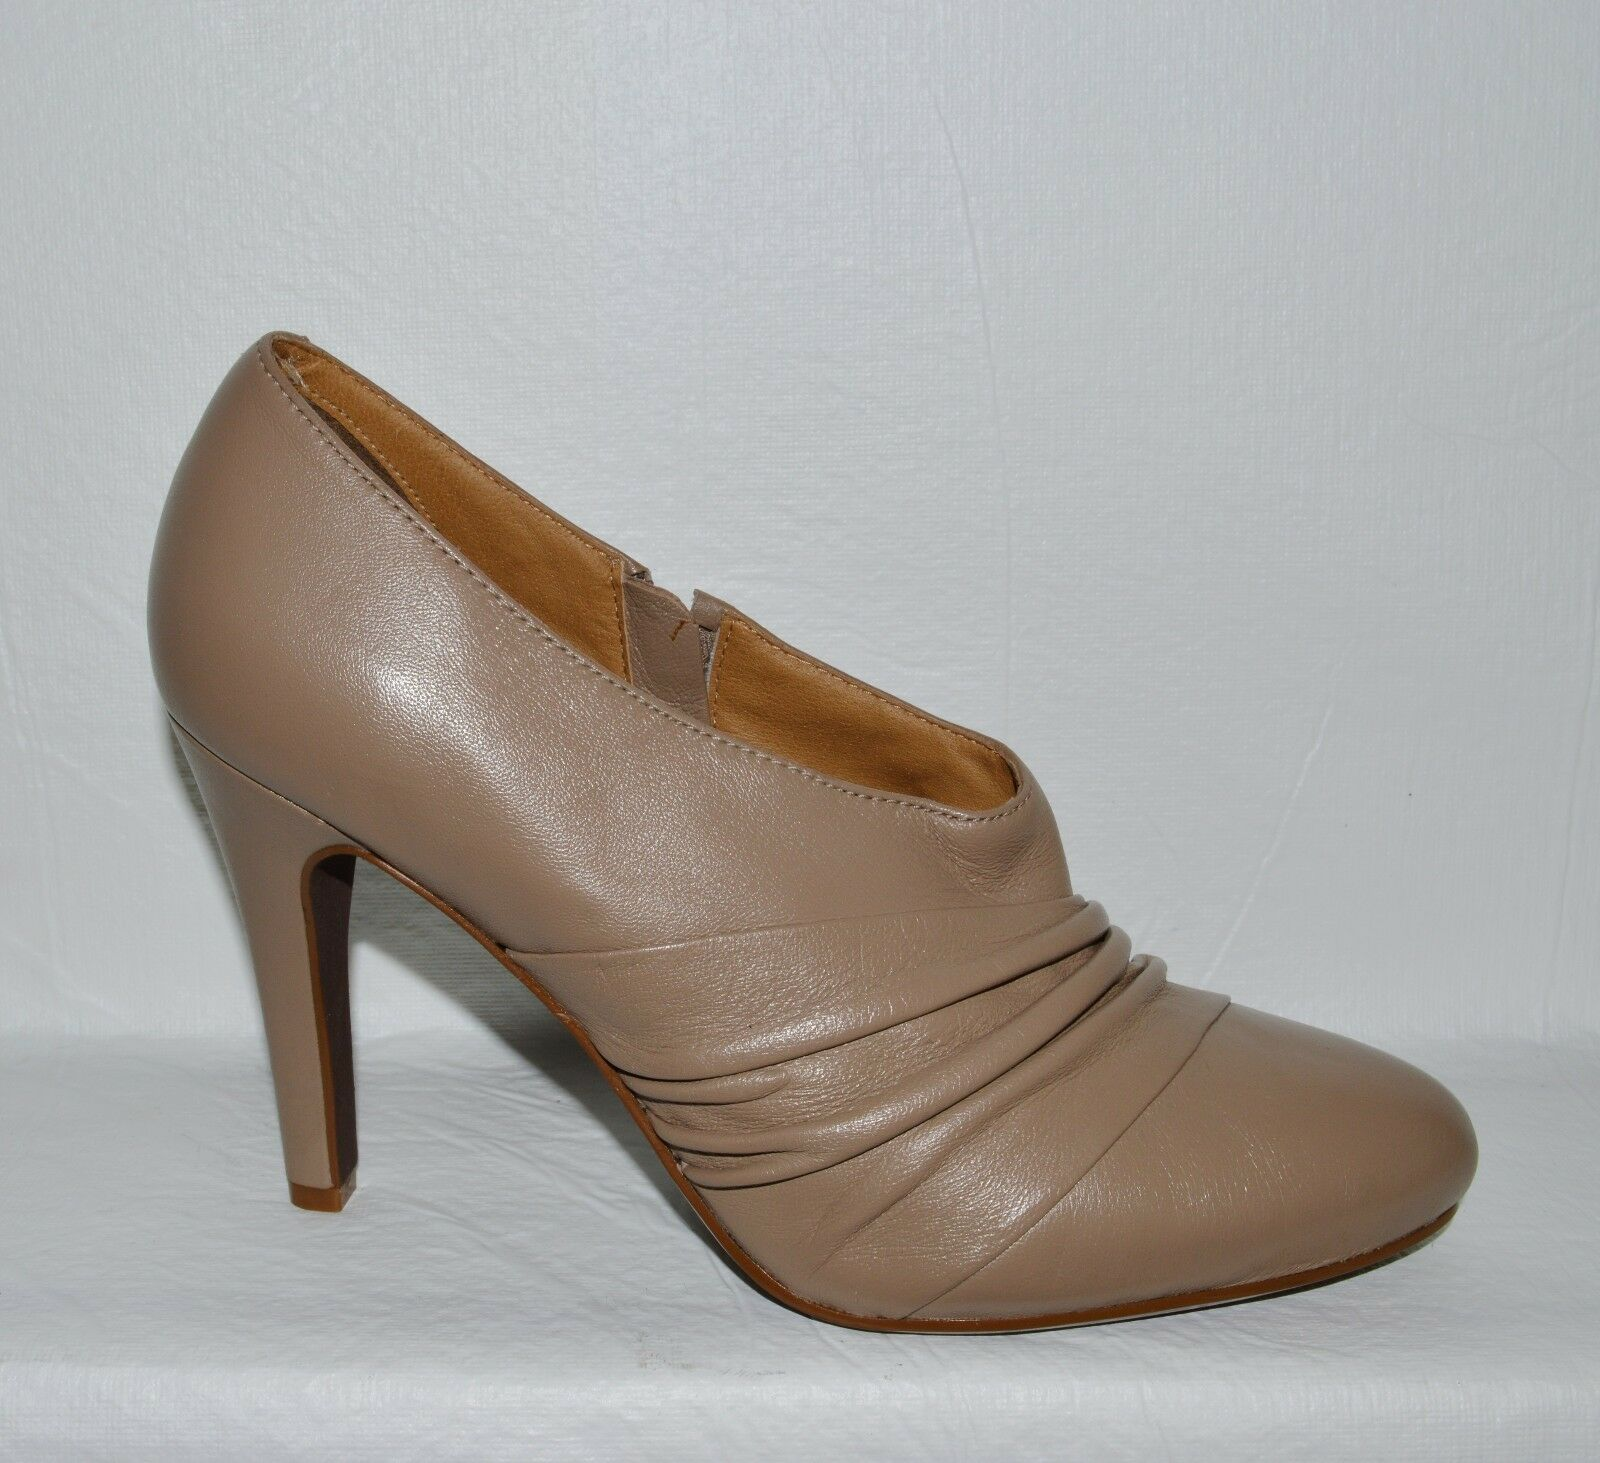 REPORT DYLAN NEW SZ 10 M TAUPE LEATHER PUMPS HEELS BOOTIES SHOES